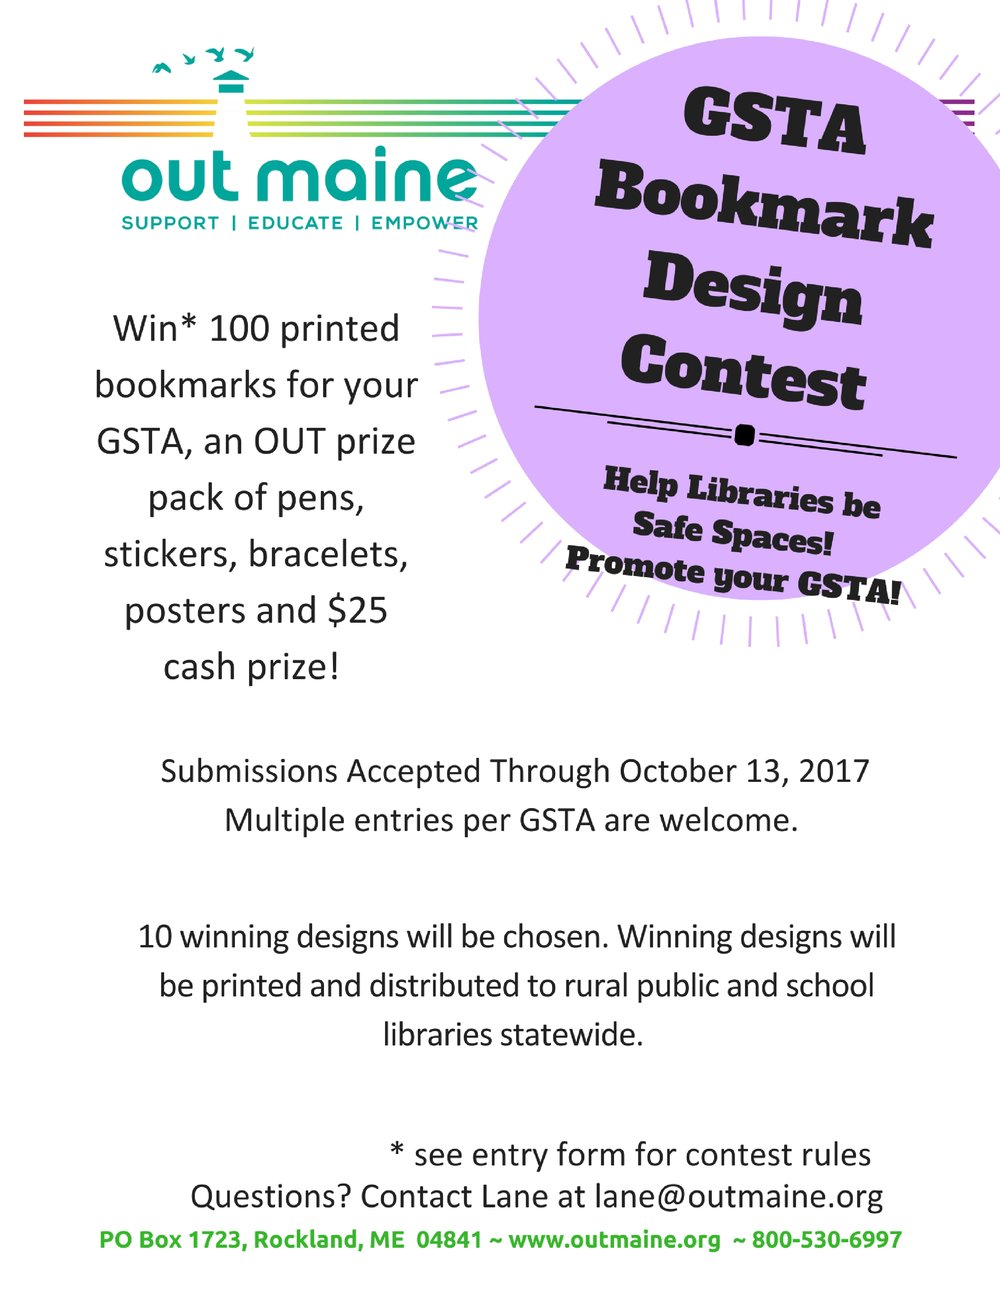 GSTA Bookmark Design Contest Flyer.jpg